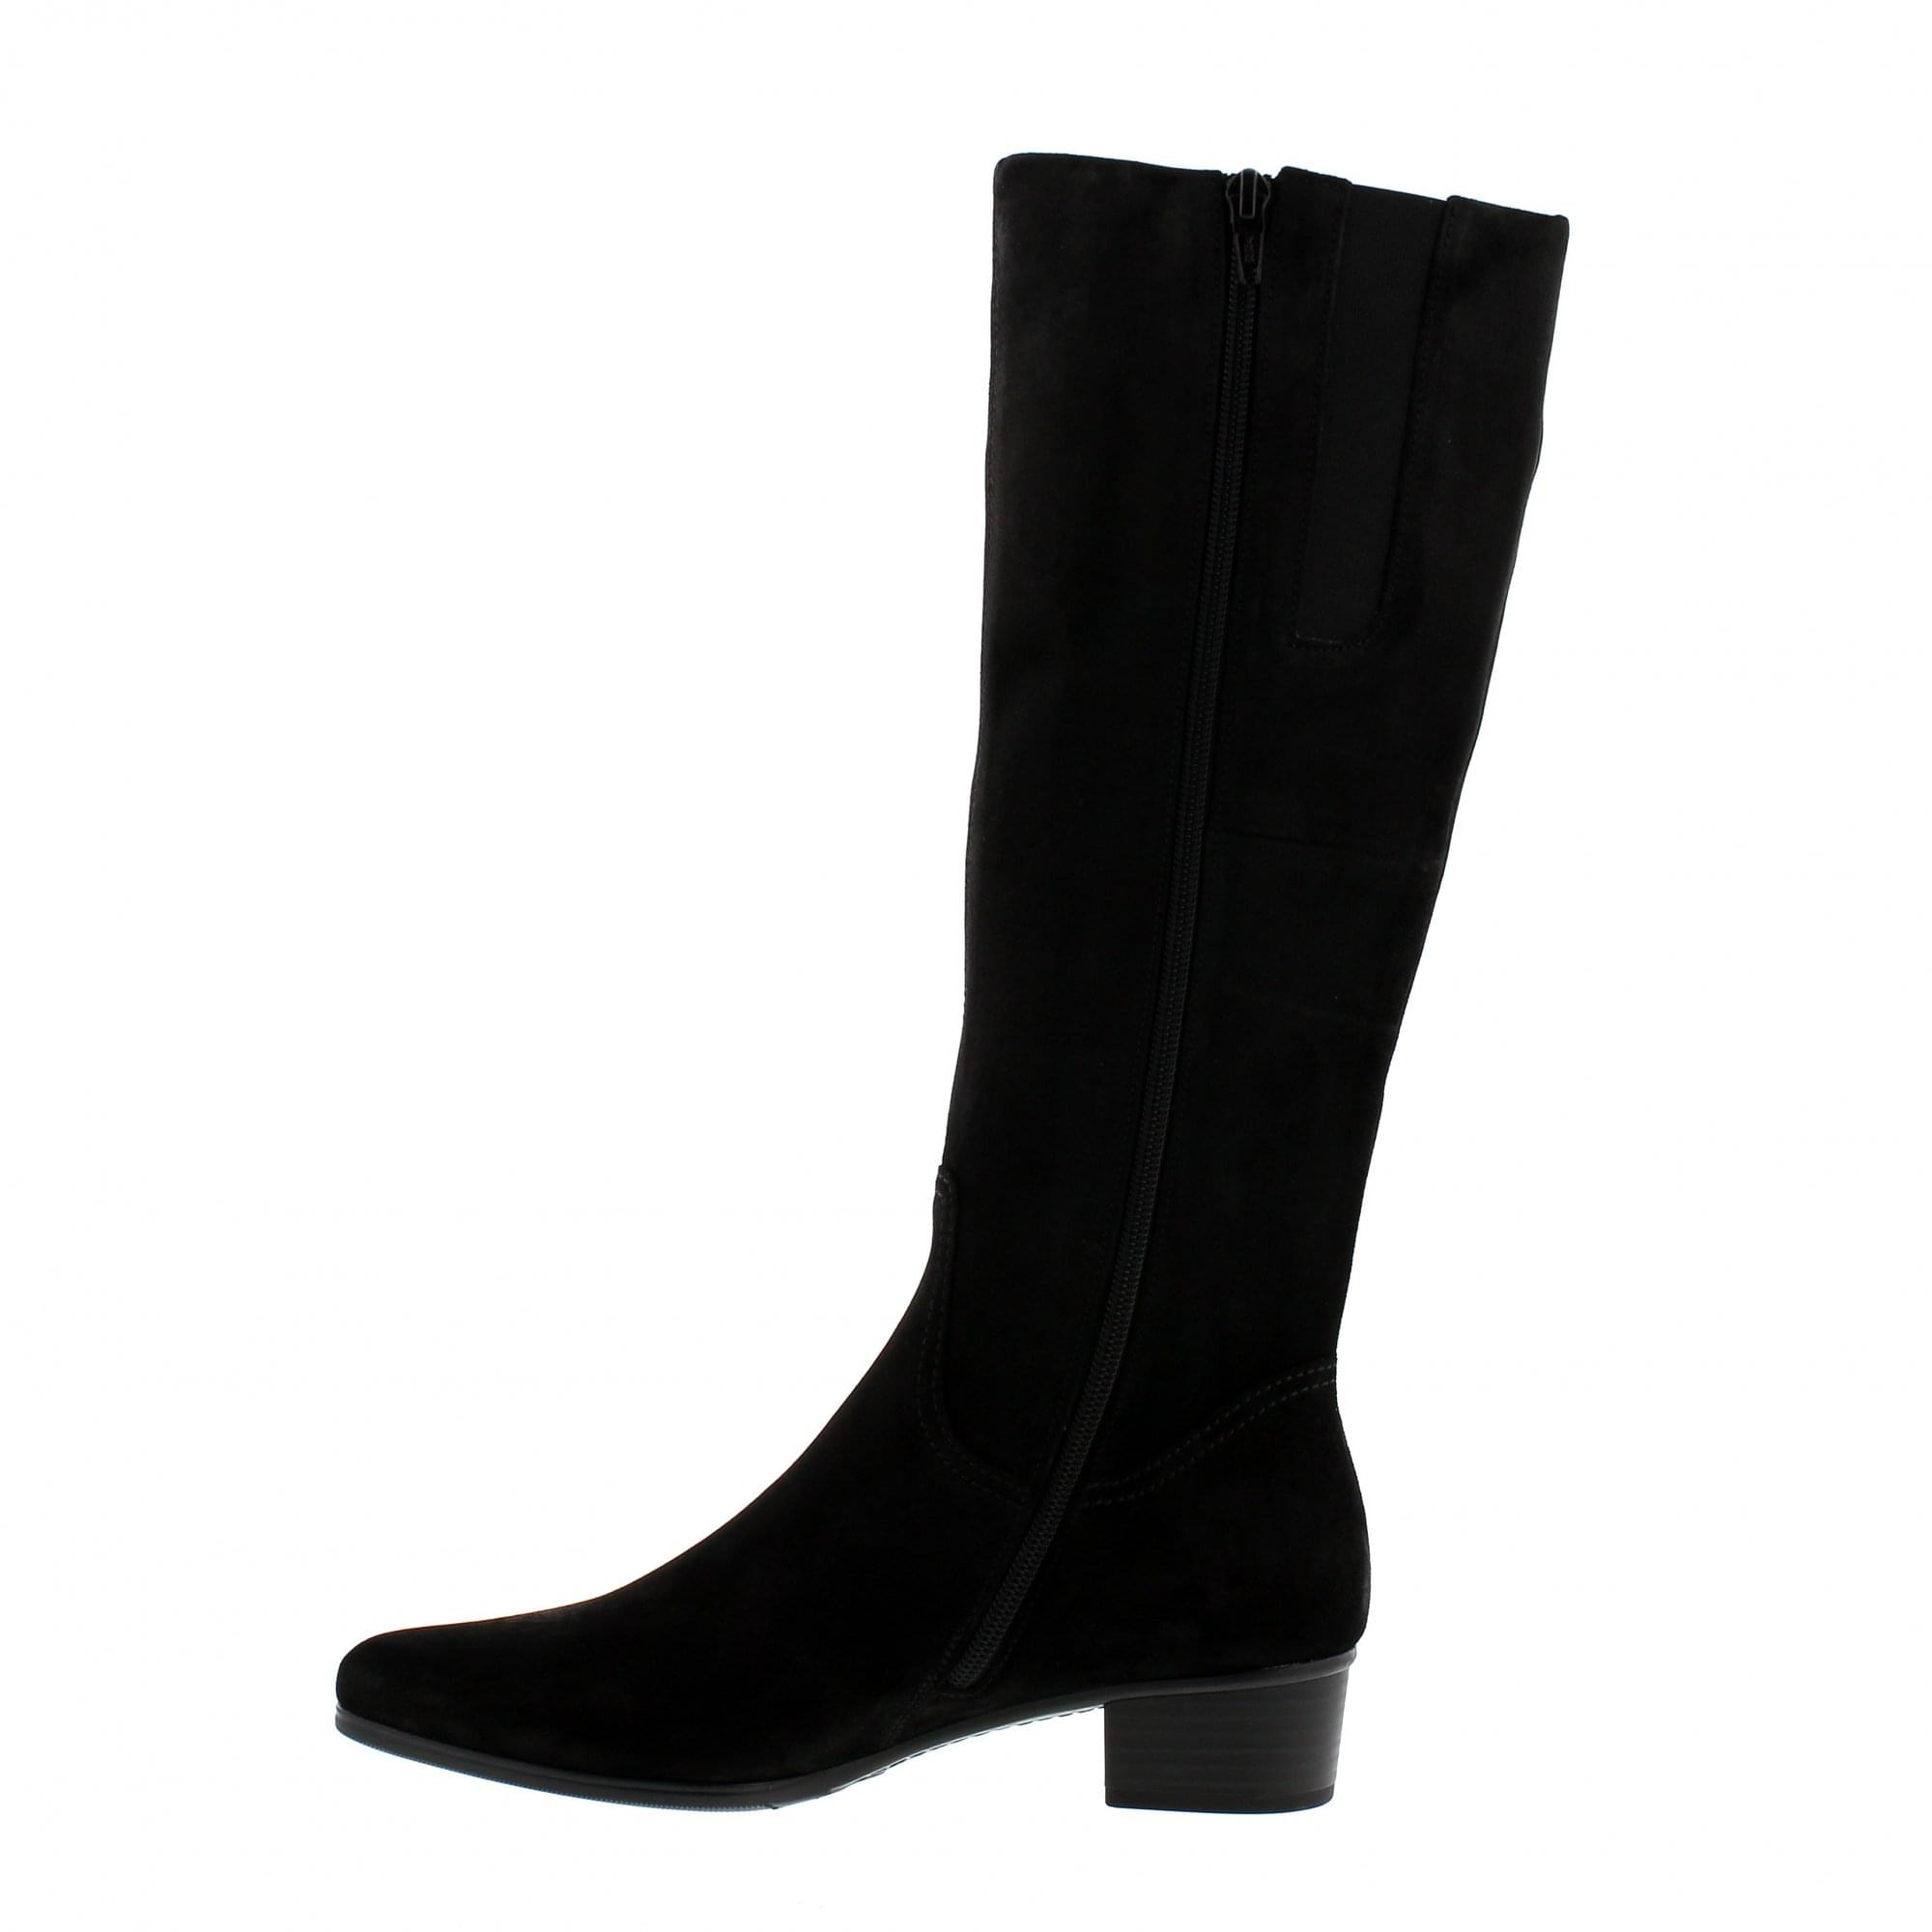 098e101db2d066 Gabor Toye S-Fit 95-608-17 Black Suede Knee High Boots